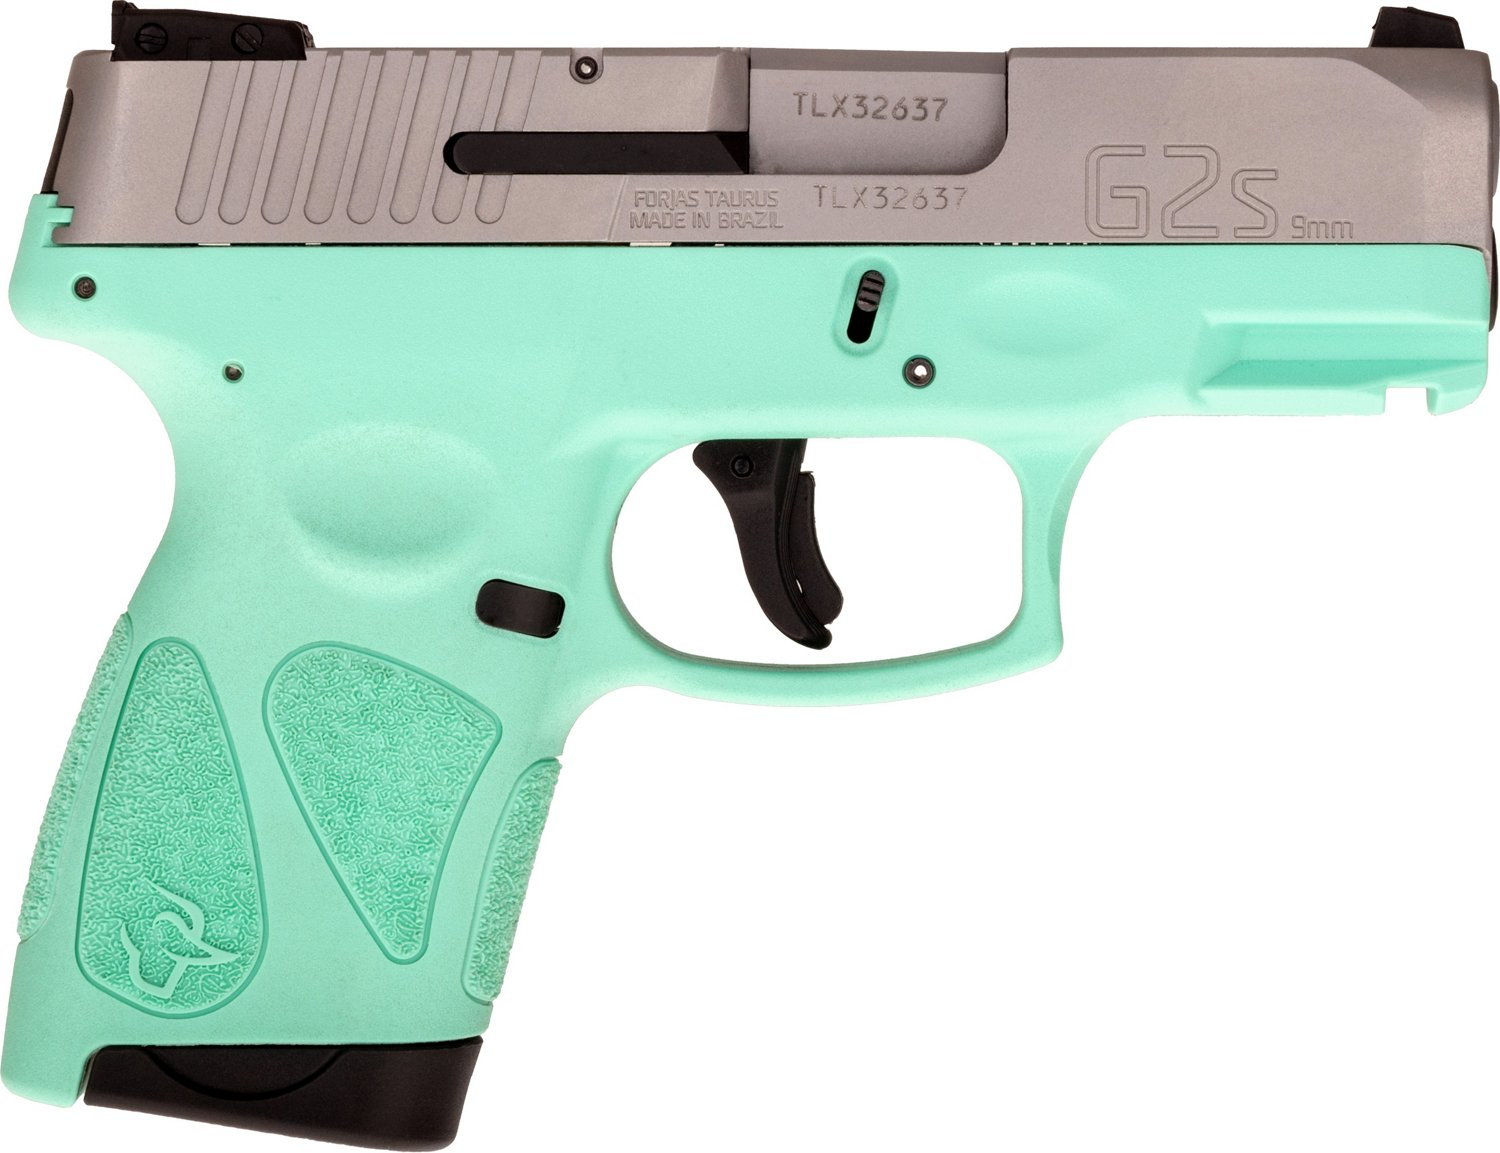 92715dbc91dd Display product reviews for Taurus G2S 9mm Pistol